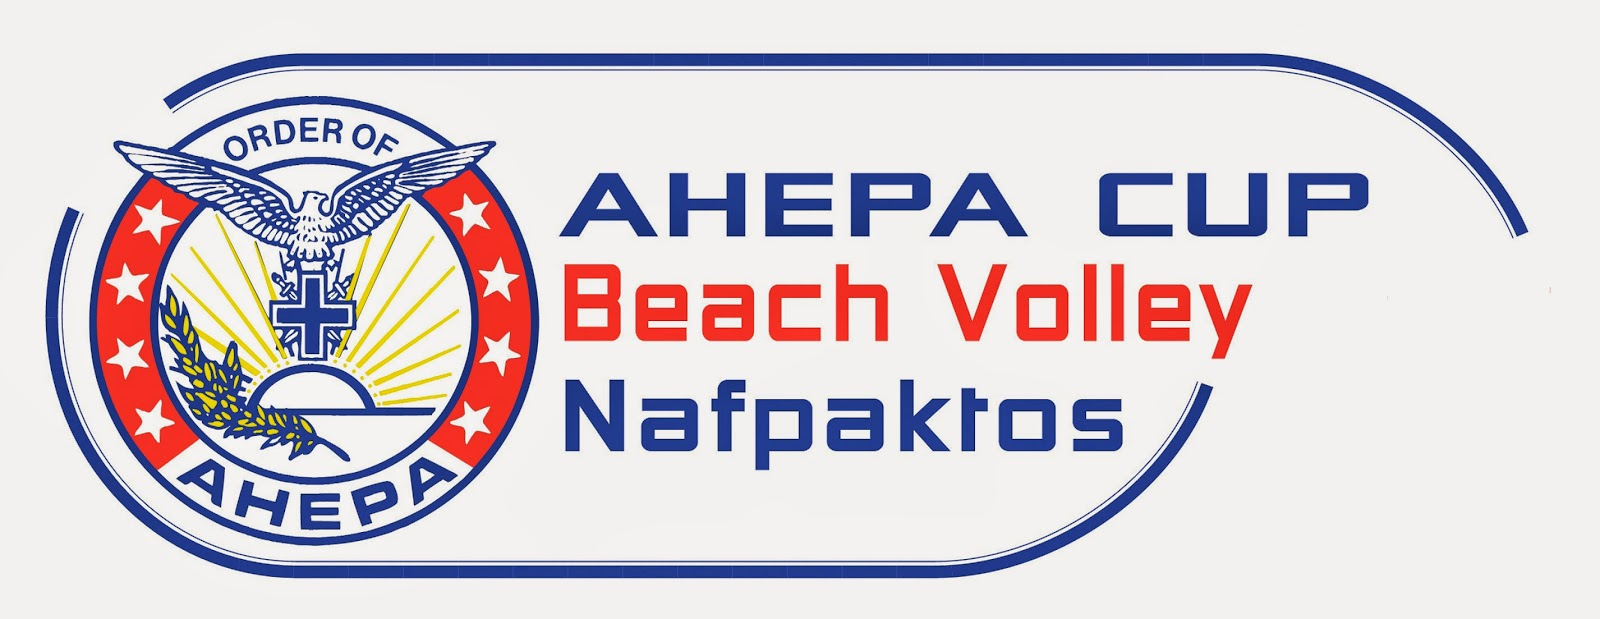 2015 AHEPA Cup Volleyball Tournament in Nafpaktos, Greece